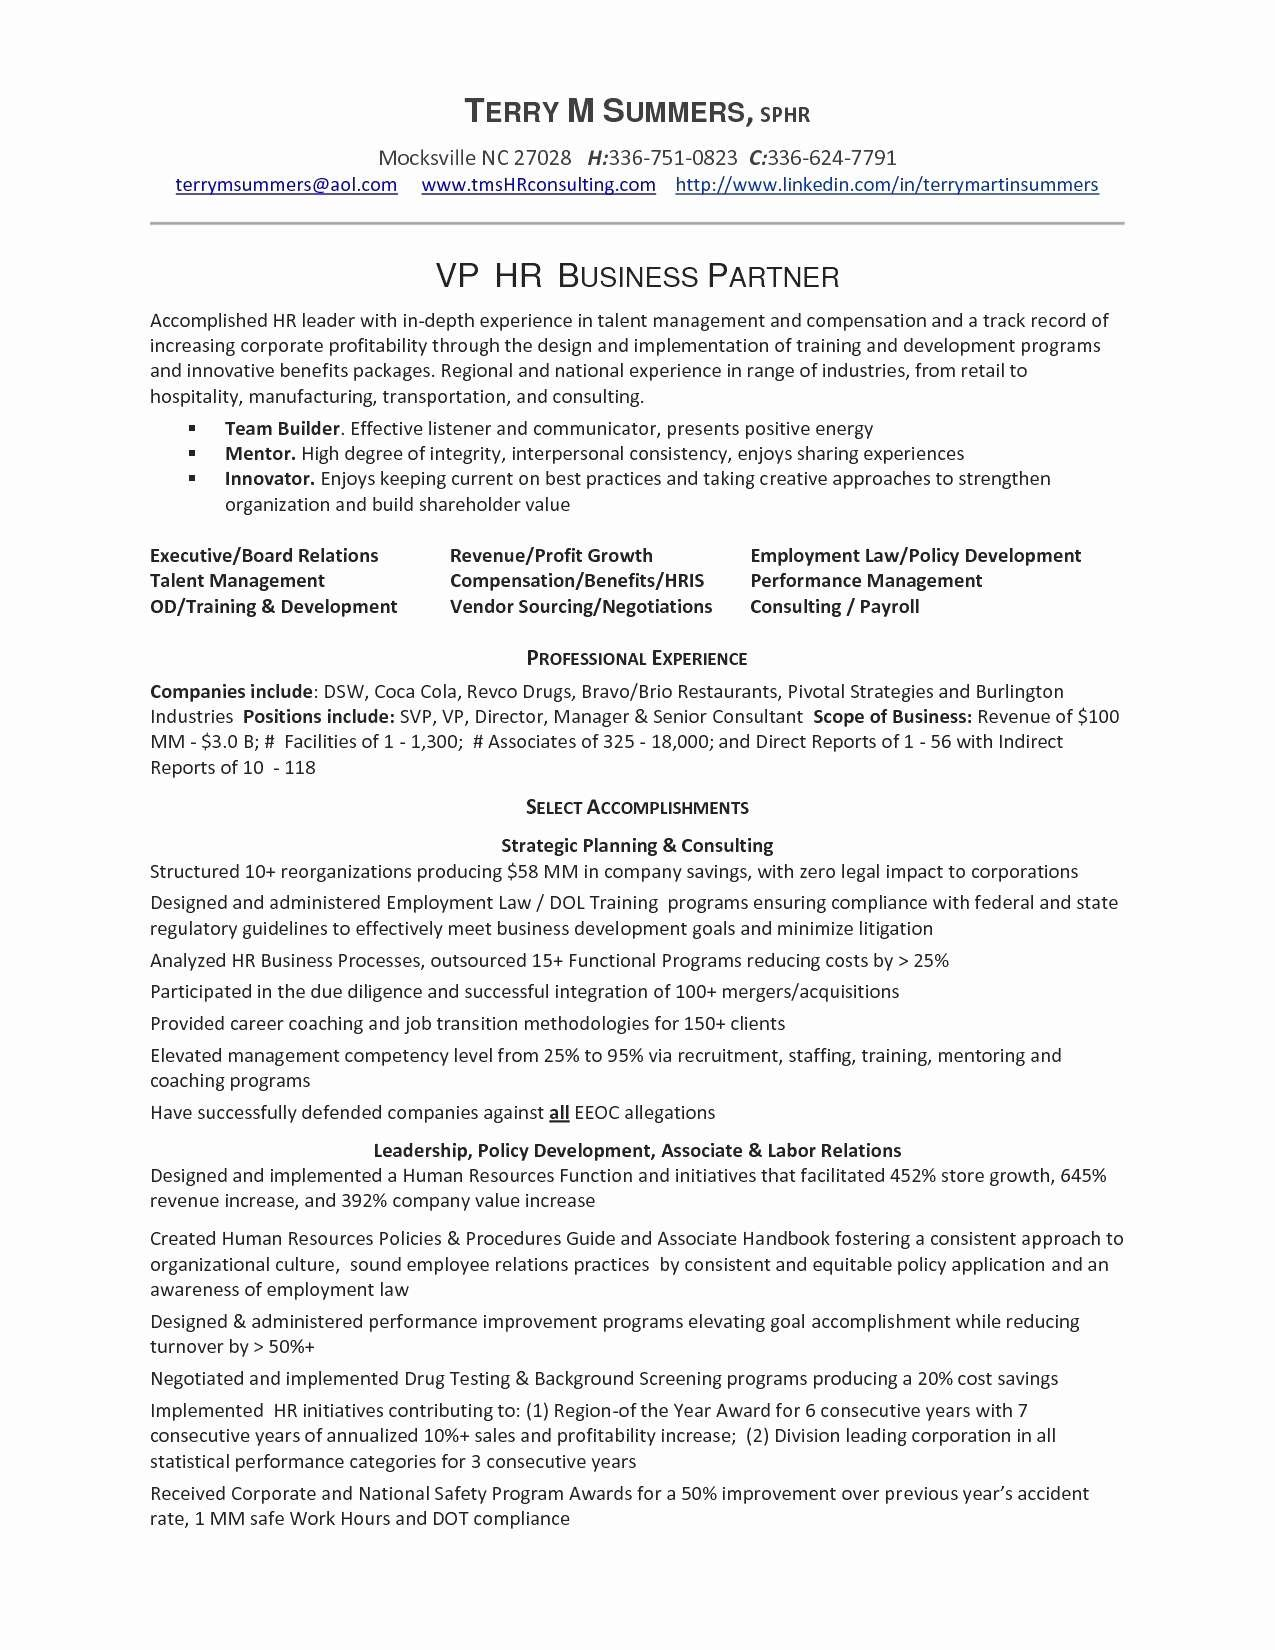 Clinical Research Coordinator Resume - Clinical Research Coordinator Resume